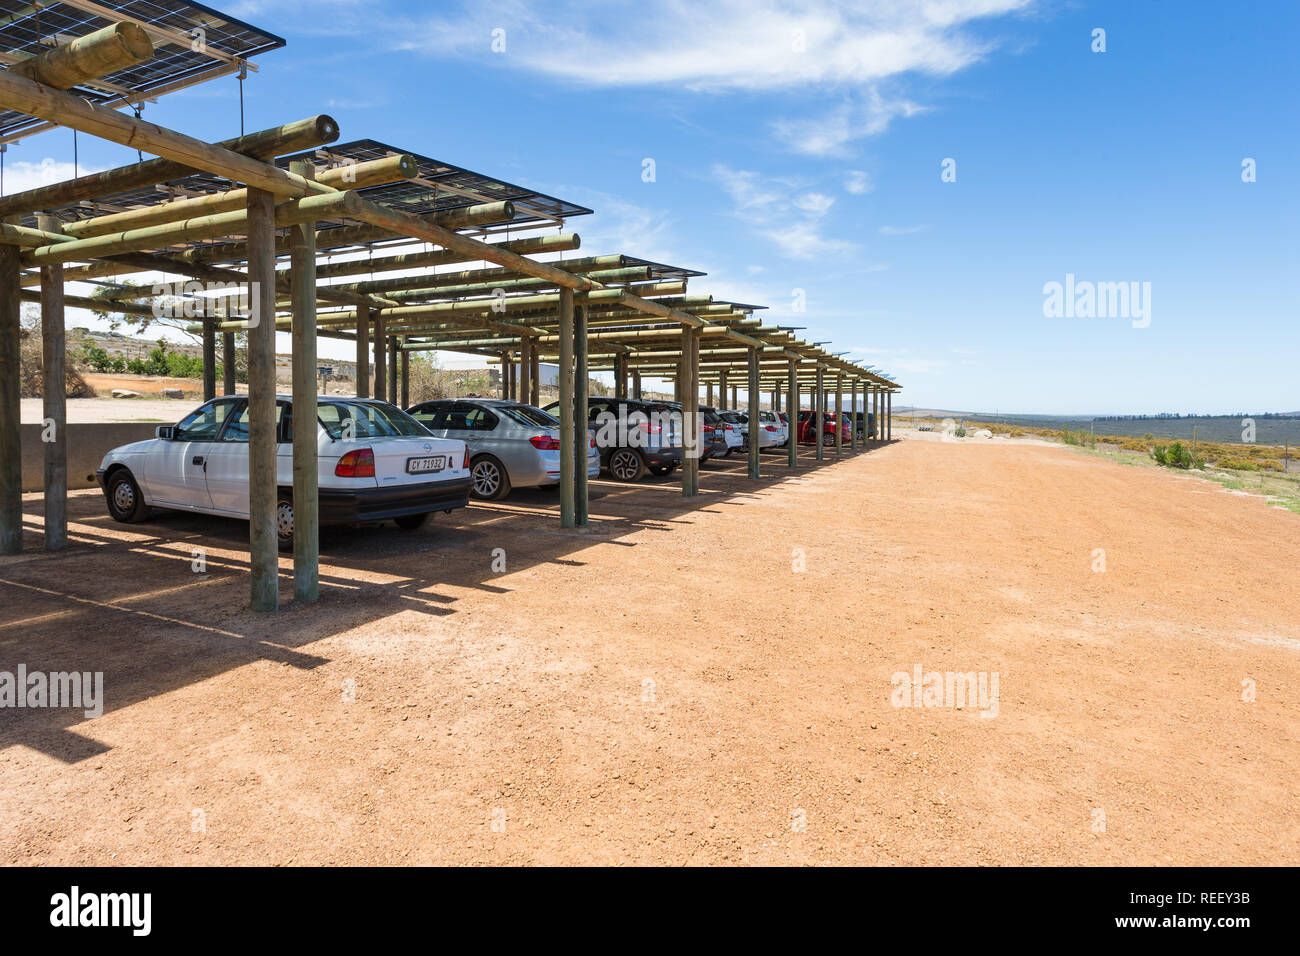 Solar panels, photovoltaic, used as car port or parking bay roof coverings to convert the sun into usable electricity as green energy in South Africa - Stock Image